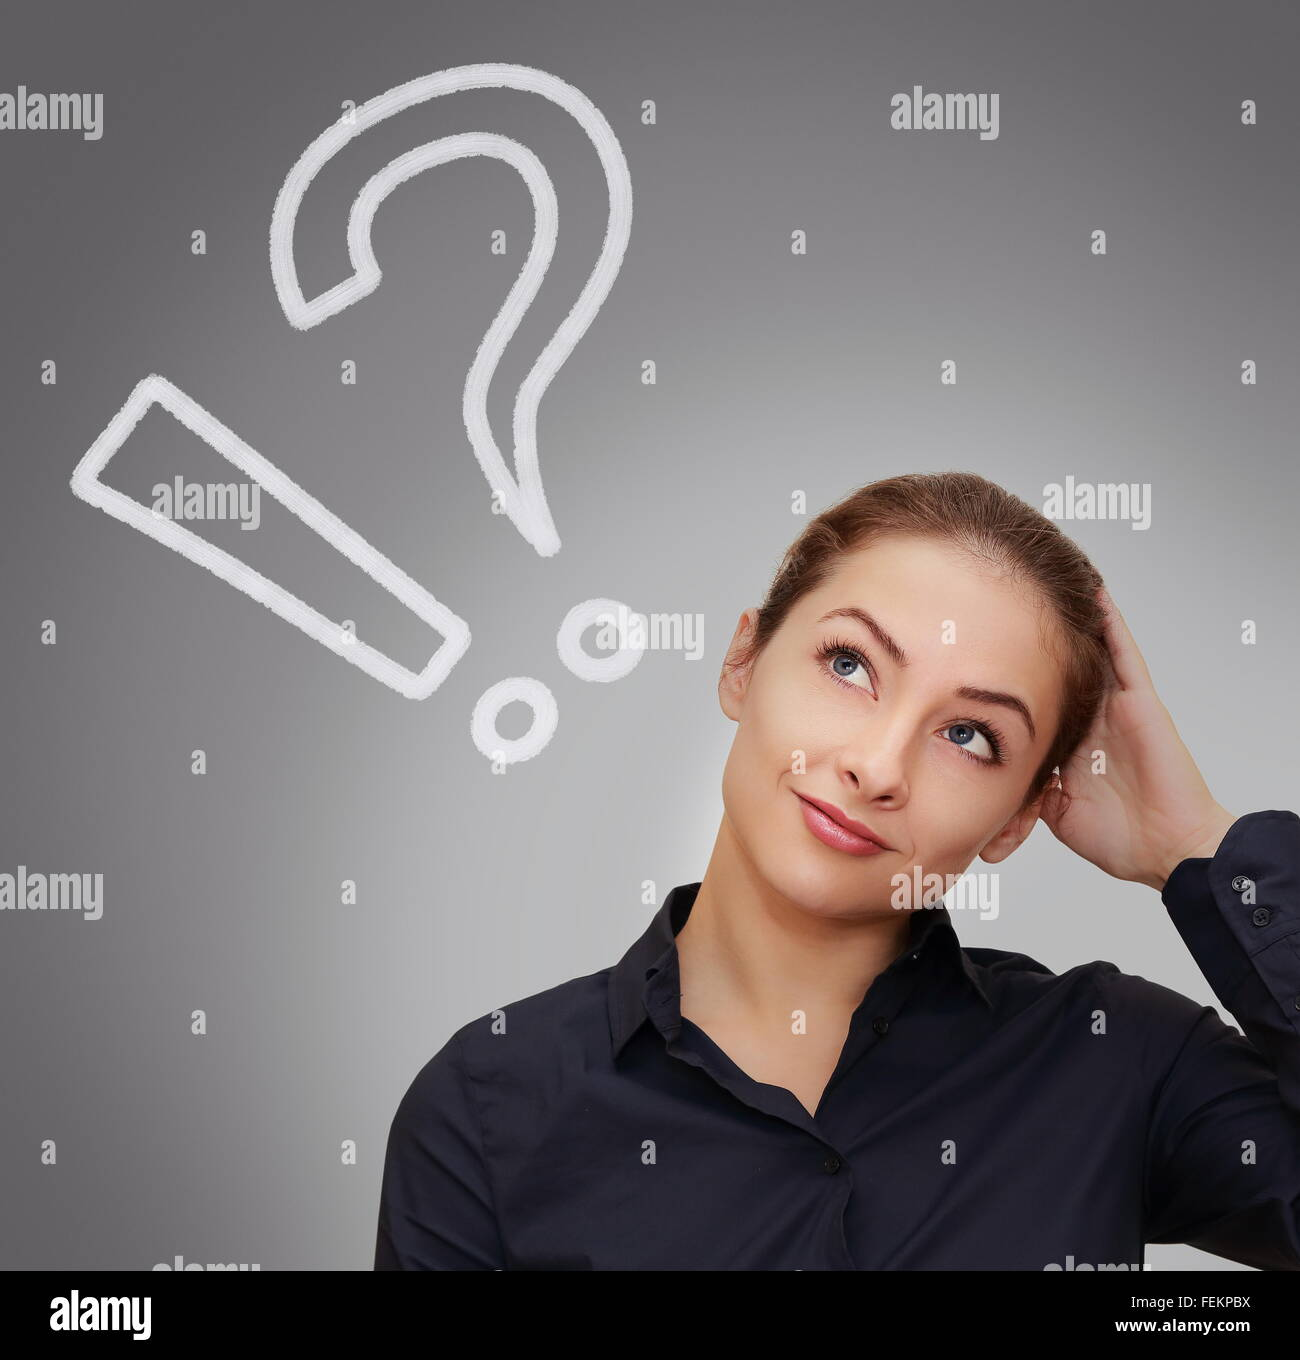 Thinking woman with question and exclamation marks above head on grey background - Stock Image